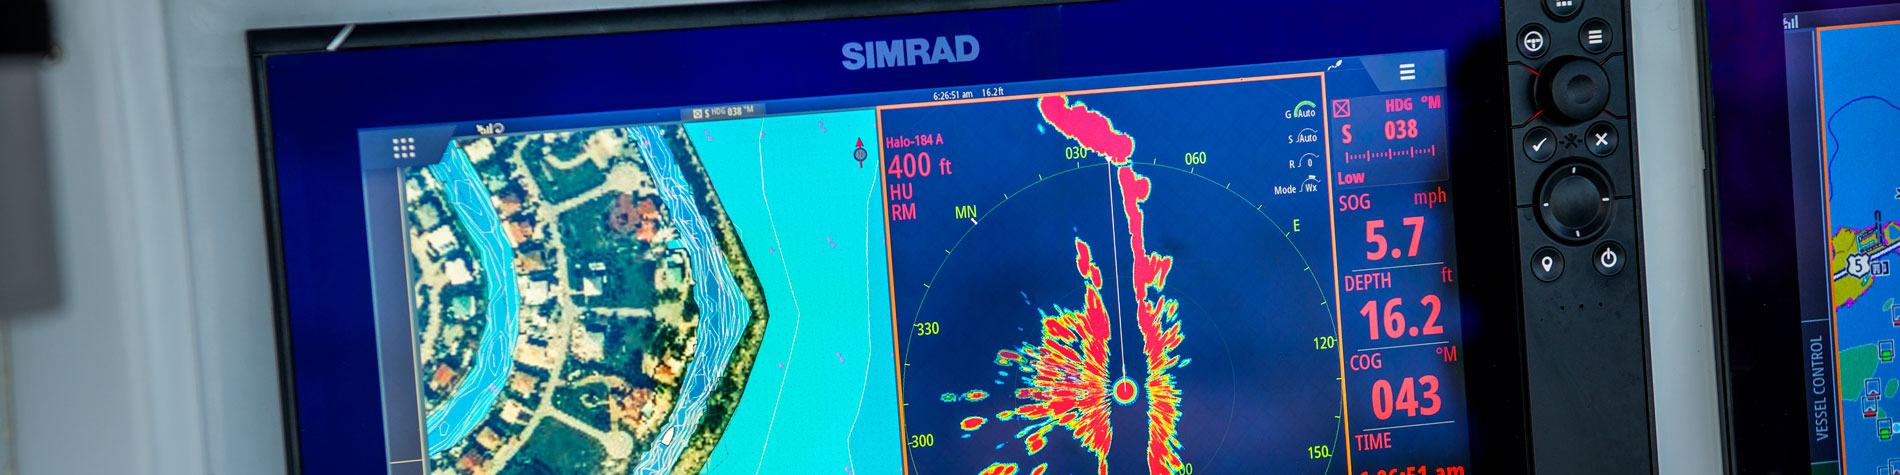 Simrad-NSS-Evo3-Close-Up-4-17.jpg